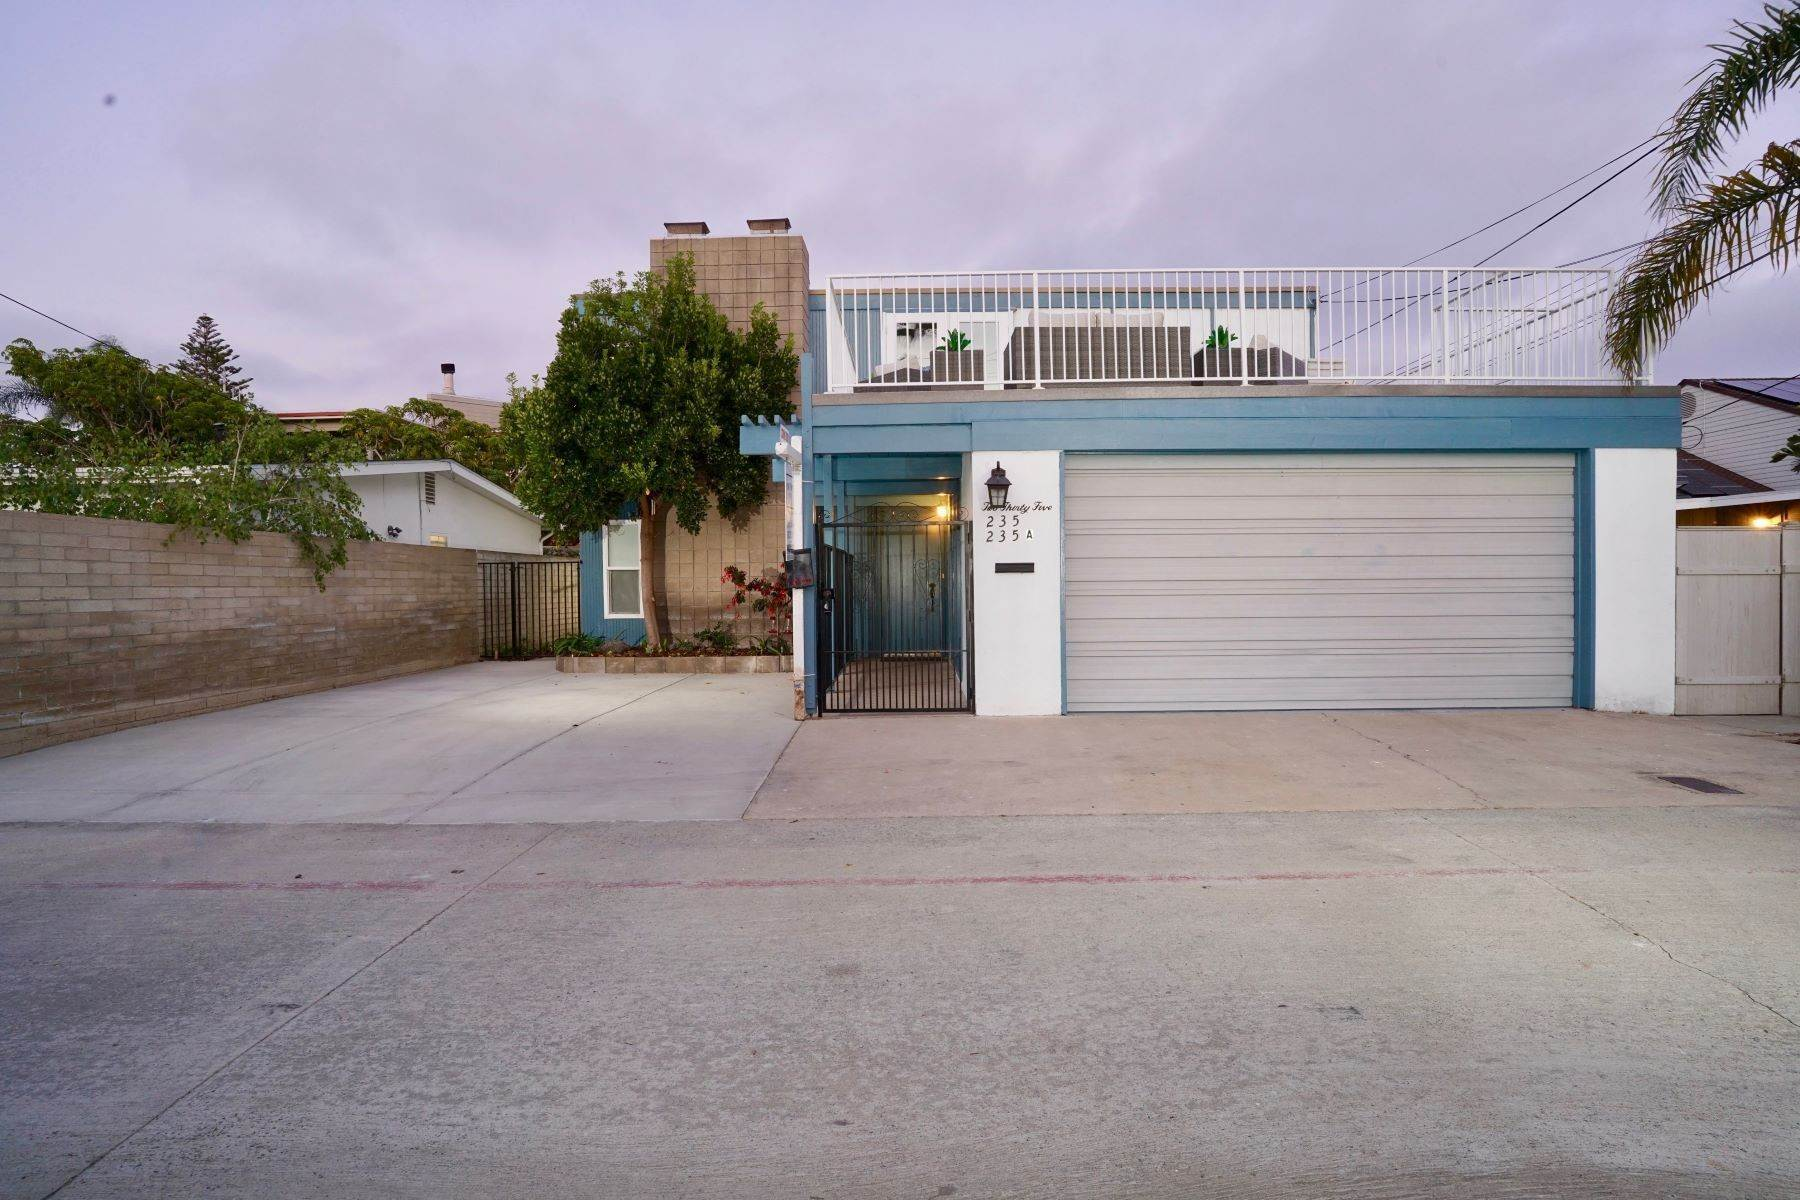 Single Family Homes for Sale at 235 El Chico Lane, Coronado, CA 92118 235 El Chico Lane Coronado, California 92118 United States